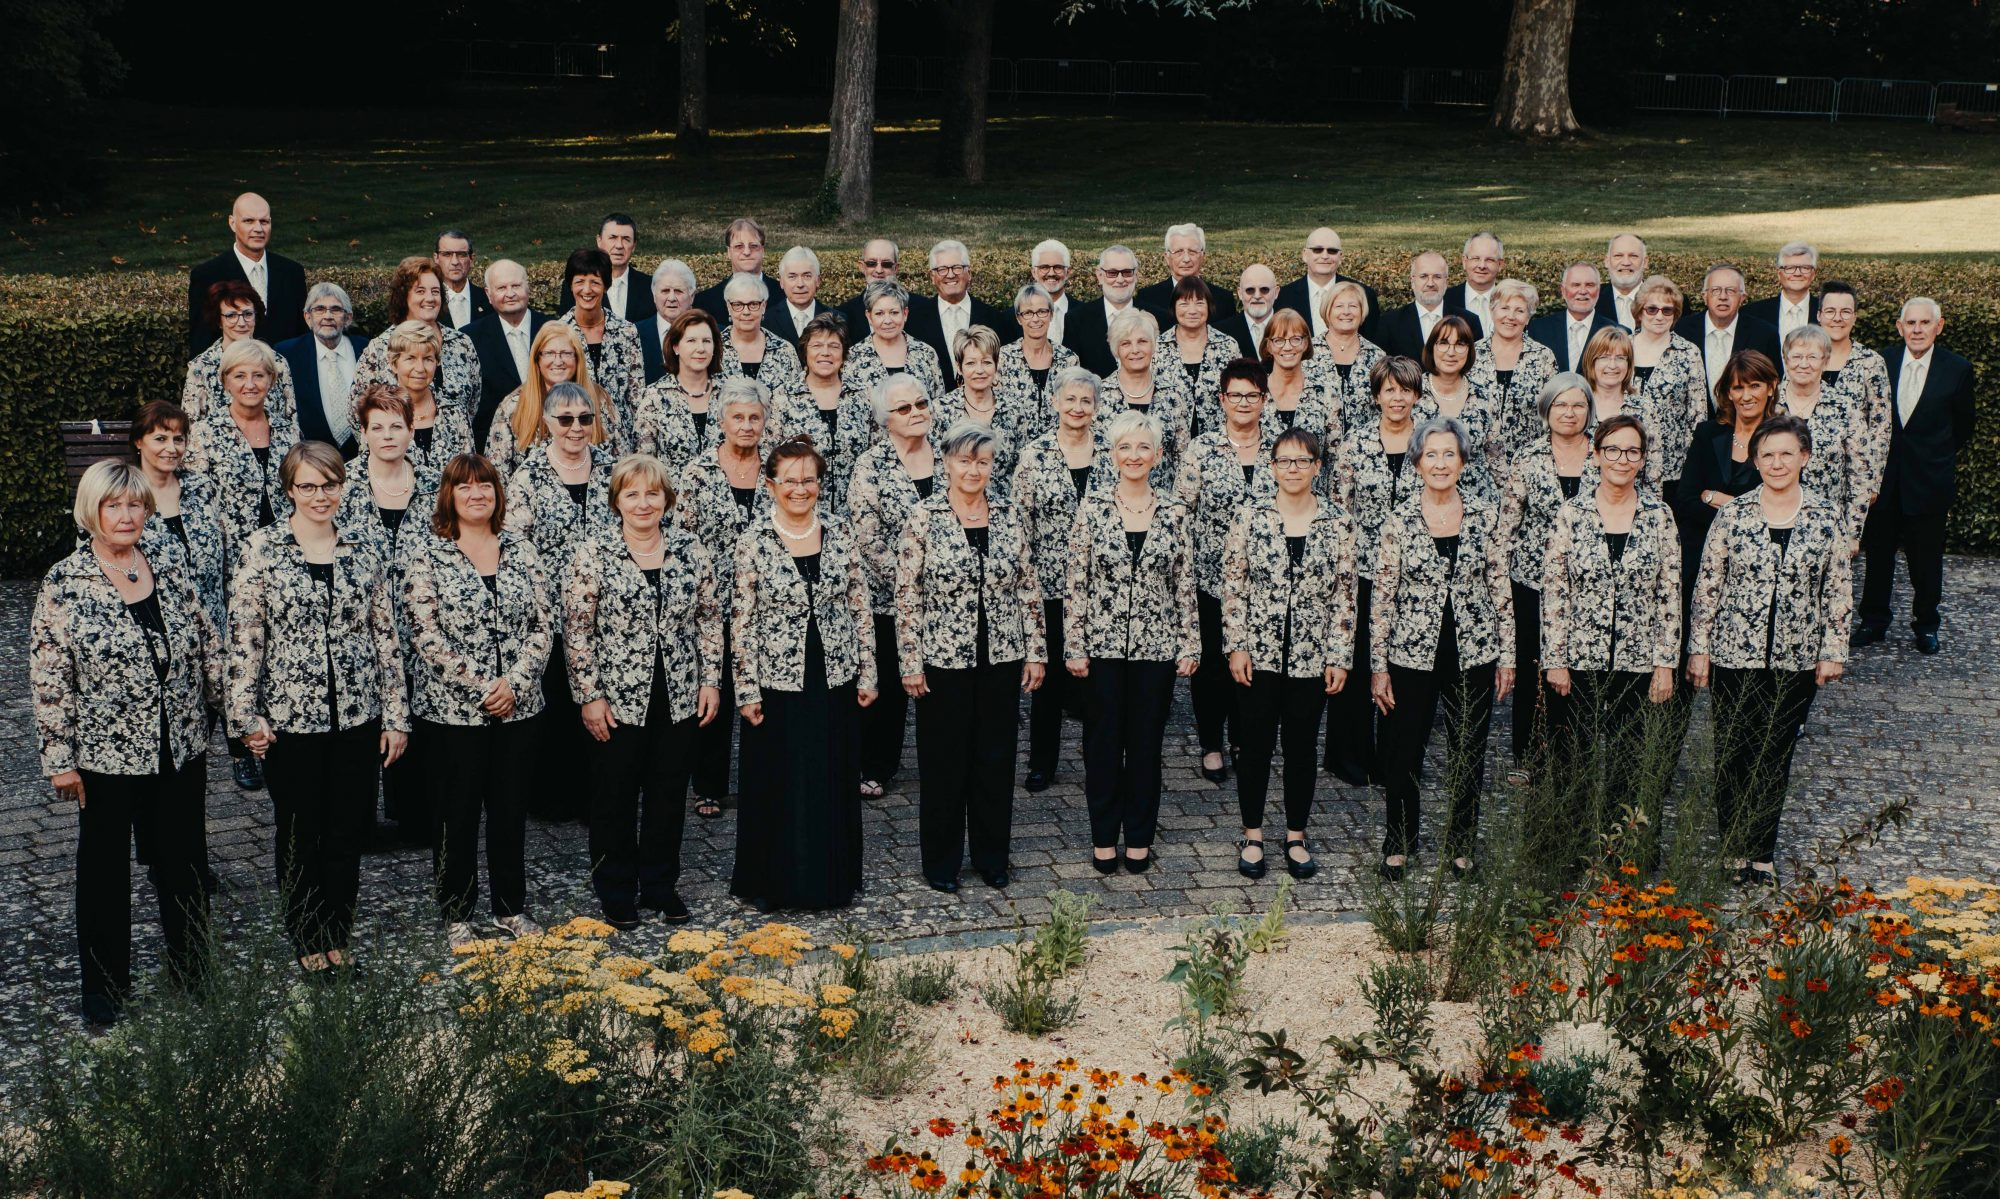 Chorale municipale Sängerfreed Bettembourg